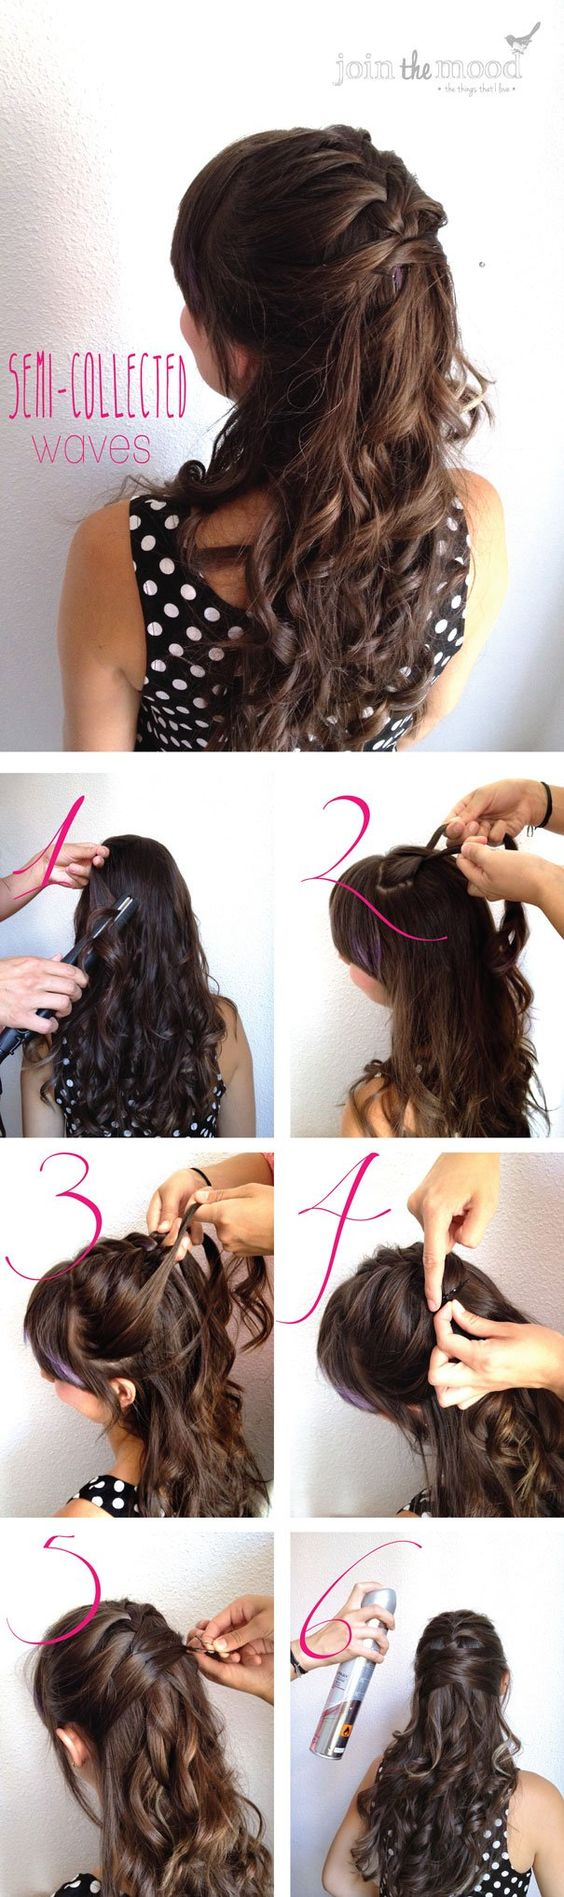 Divas, cute hair DIYs are as easy as 1-2-3 when you follow our super-simple step-by-step tutorials. In this post you can check out 13 Half-Up Half-Down Hair Tutorials. Half updo hairstyles are extremely popular. There are many great ways of managing your hair while showing off some style too.